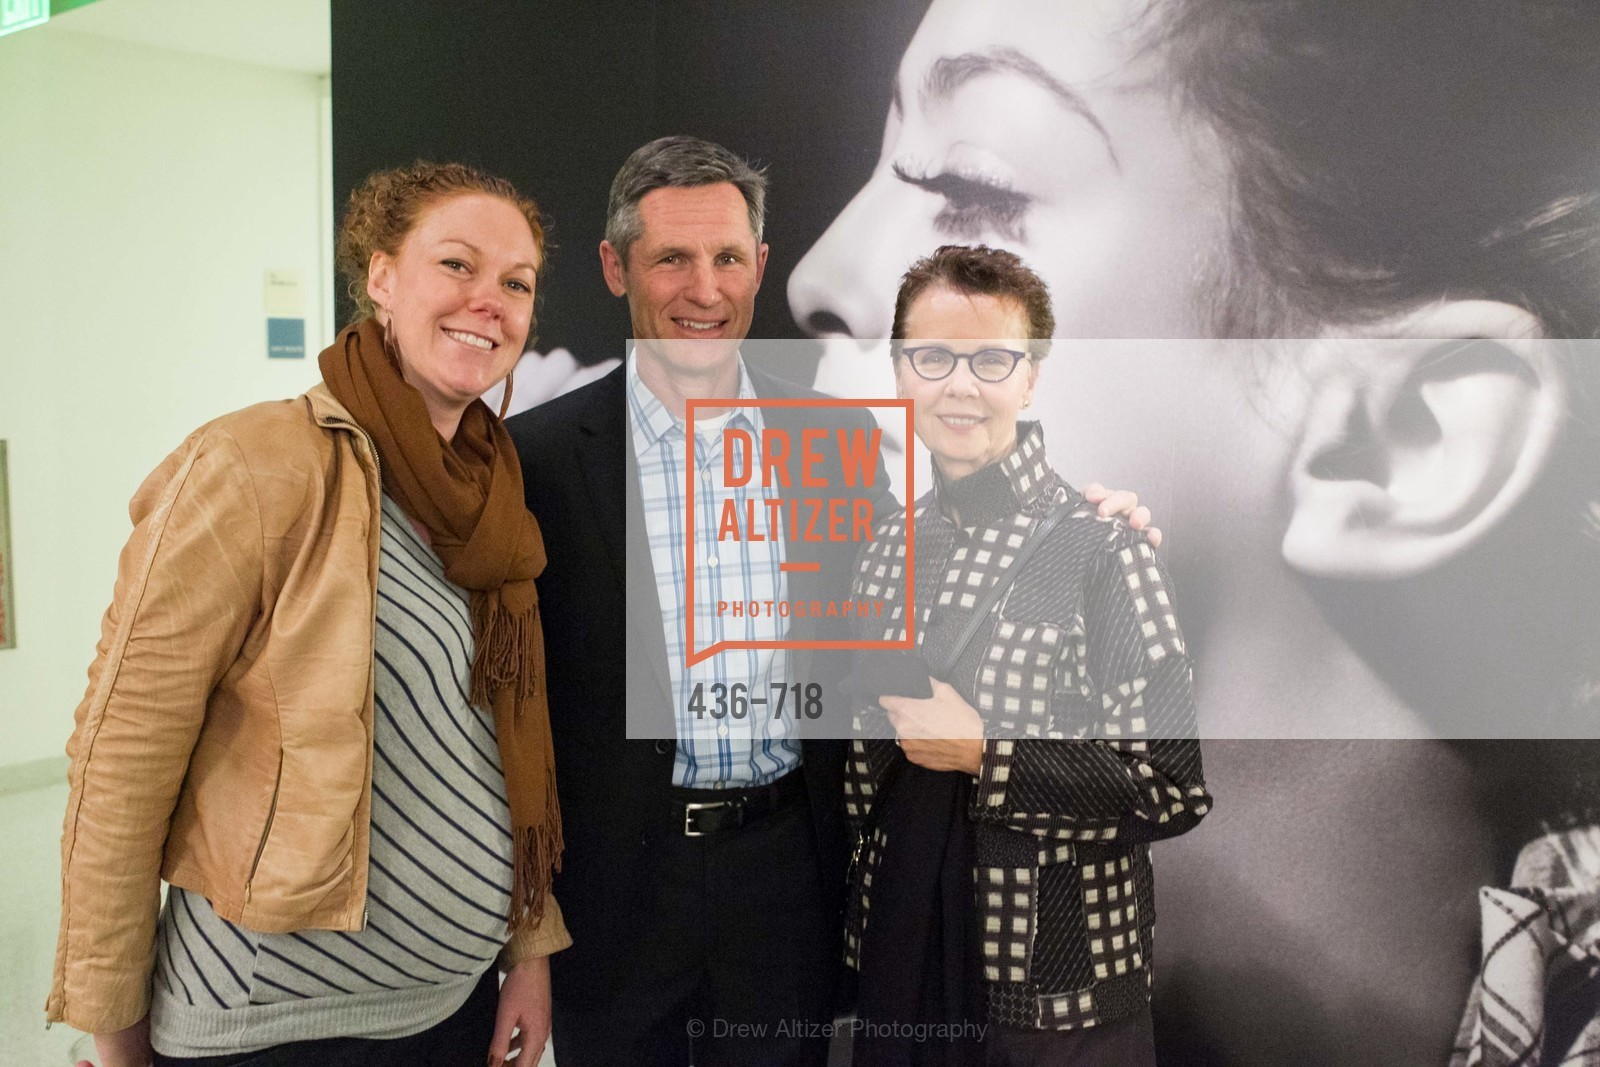 Shae Wilder. Kevin Laughlin, Kathleen Taylor, ICAA Hosts NICKY HASLAM'S Lecture and Book Signing, US, May 11th, 2015,Drew Altizer, Drew Altizer Photography, full-service agency, private events, San Francisco photographer, photographer california